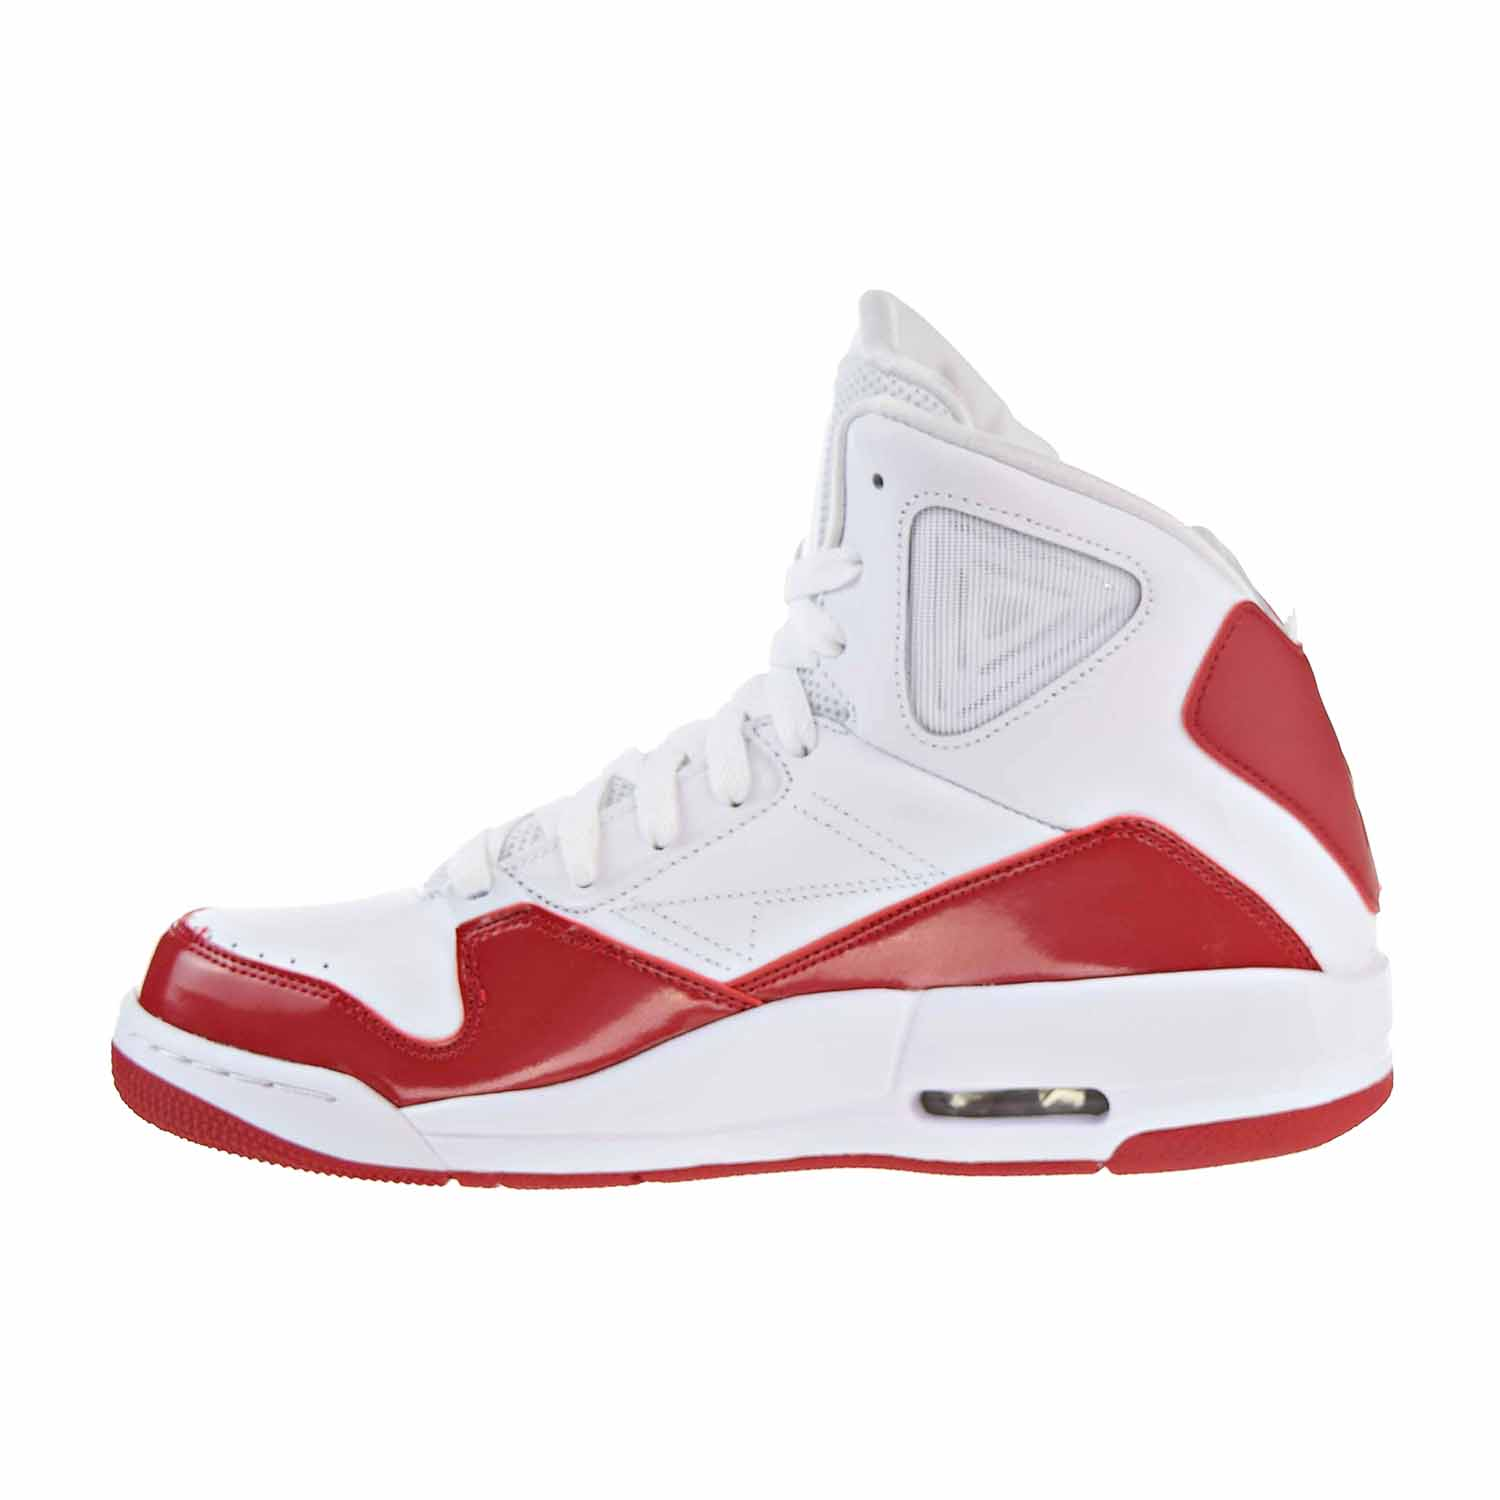 Jordan C-3 Men's Basketball Shoes Shoes Shoes White/Gym Red 629877-116 bafe82